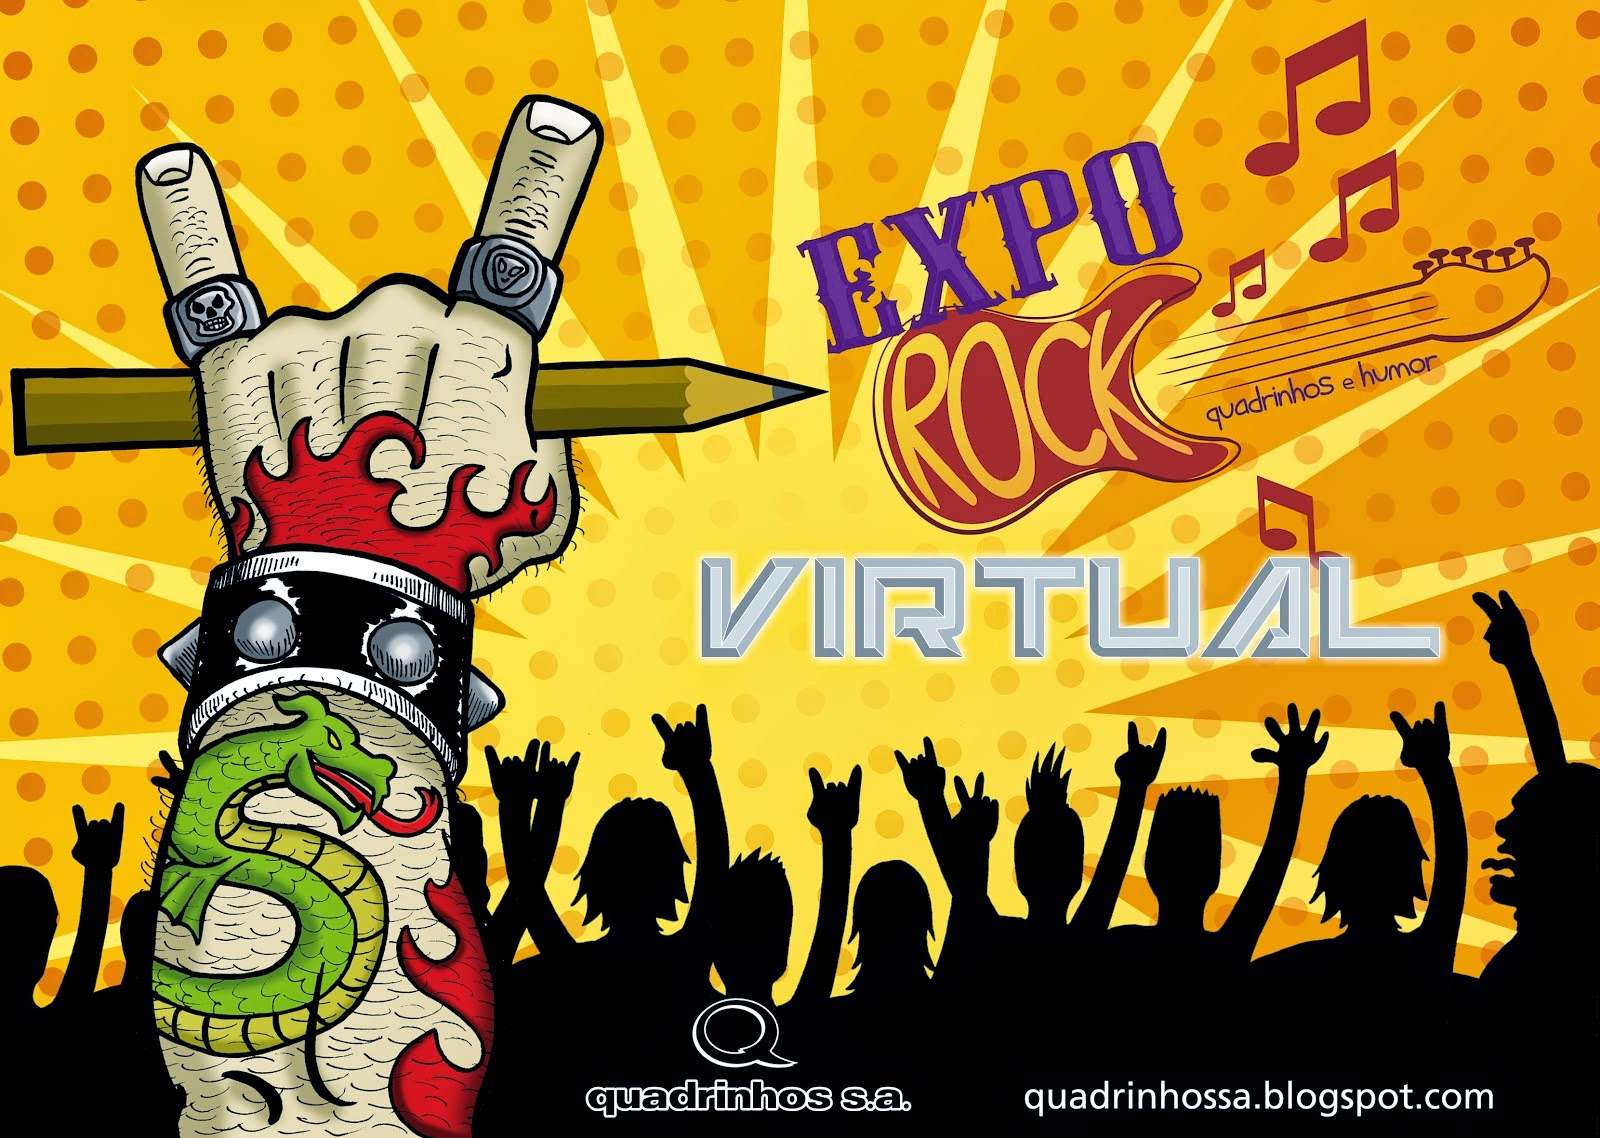 Expo Rock VIRTUAL (2012)